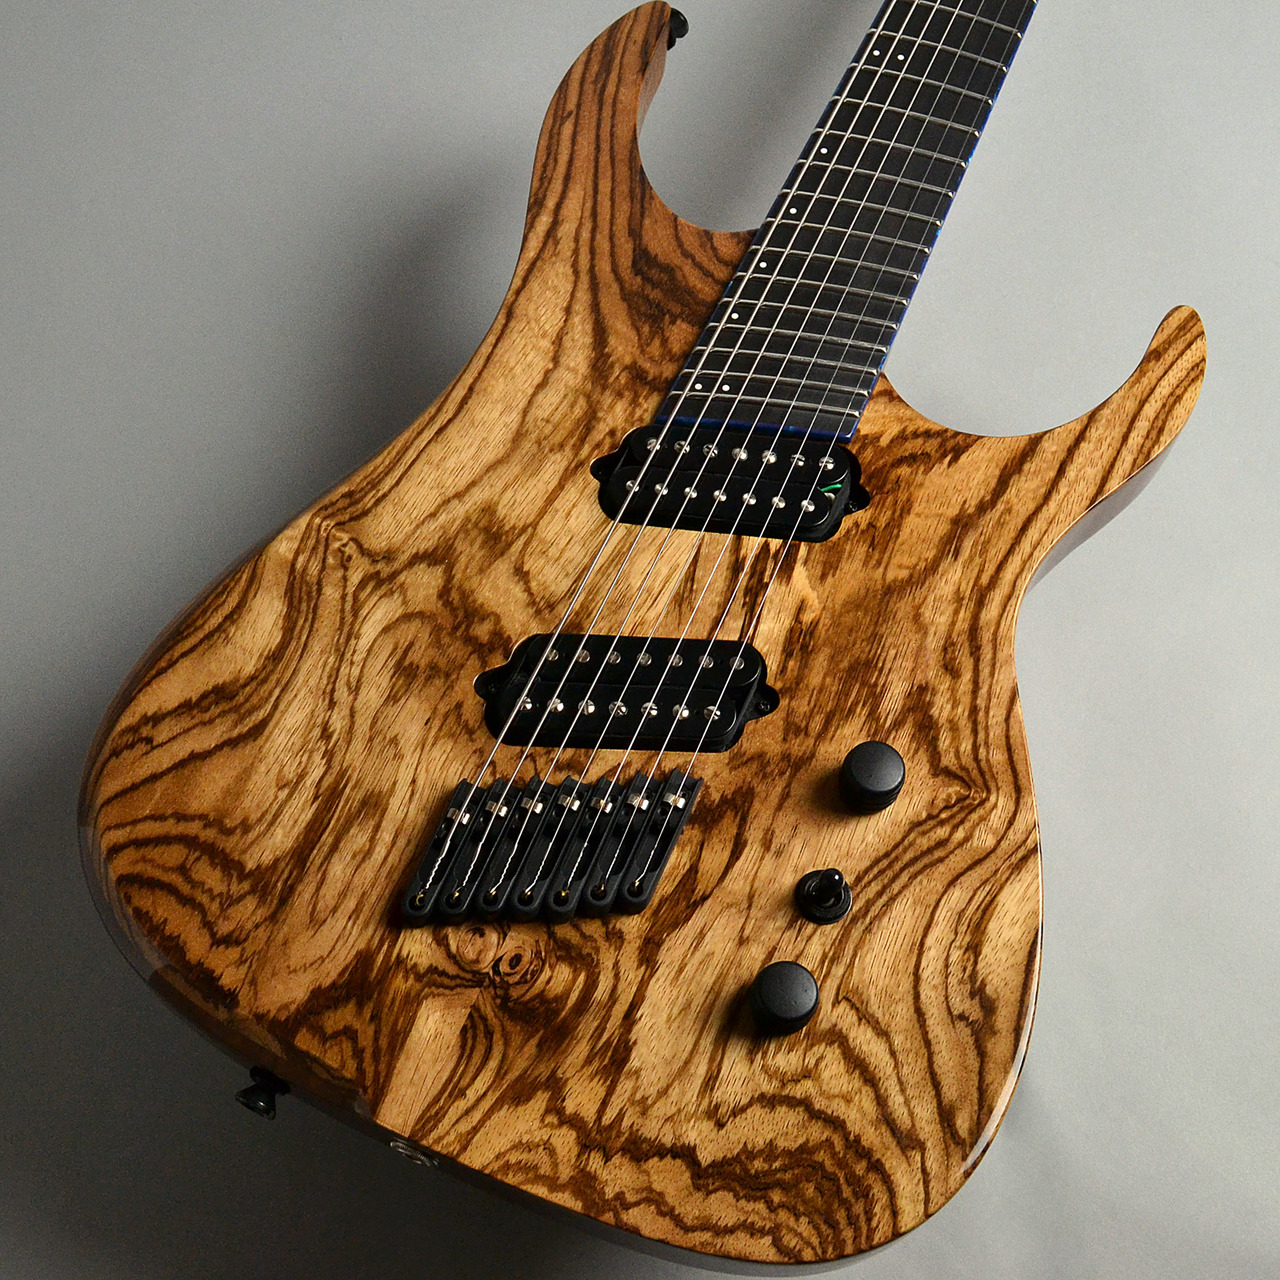 Ormsby Guitars HypeMachine 7st Zebrawood Top エレキギター(7弦) 【オームズビー】【新宿PePe店】